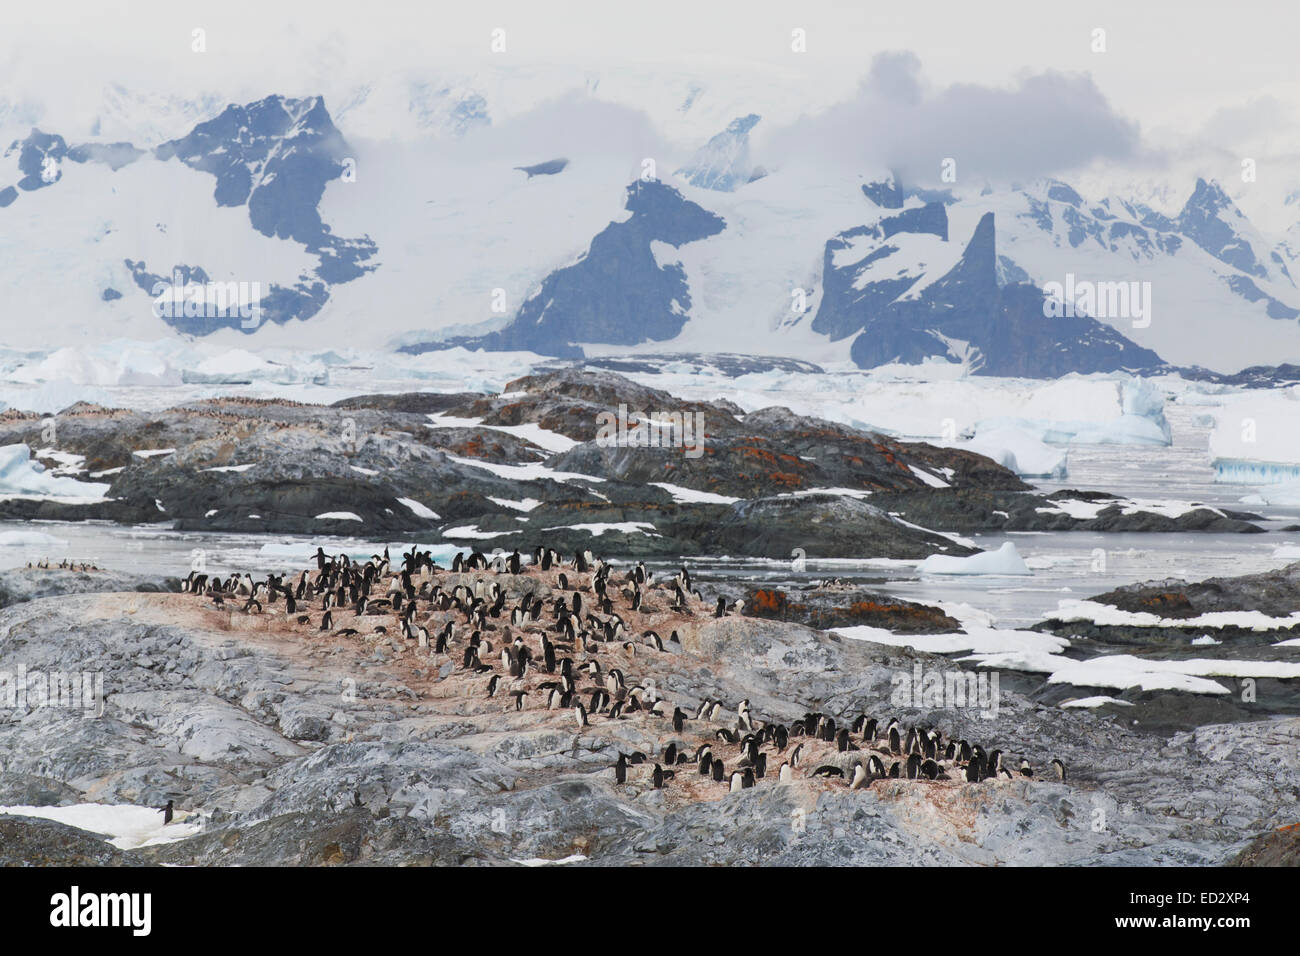 Adélie penguin (Pygoscelis adeliae) colony on Yalour Island, Antarctica. - Stock Image